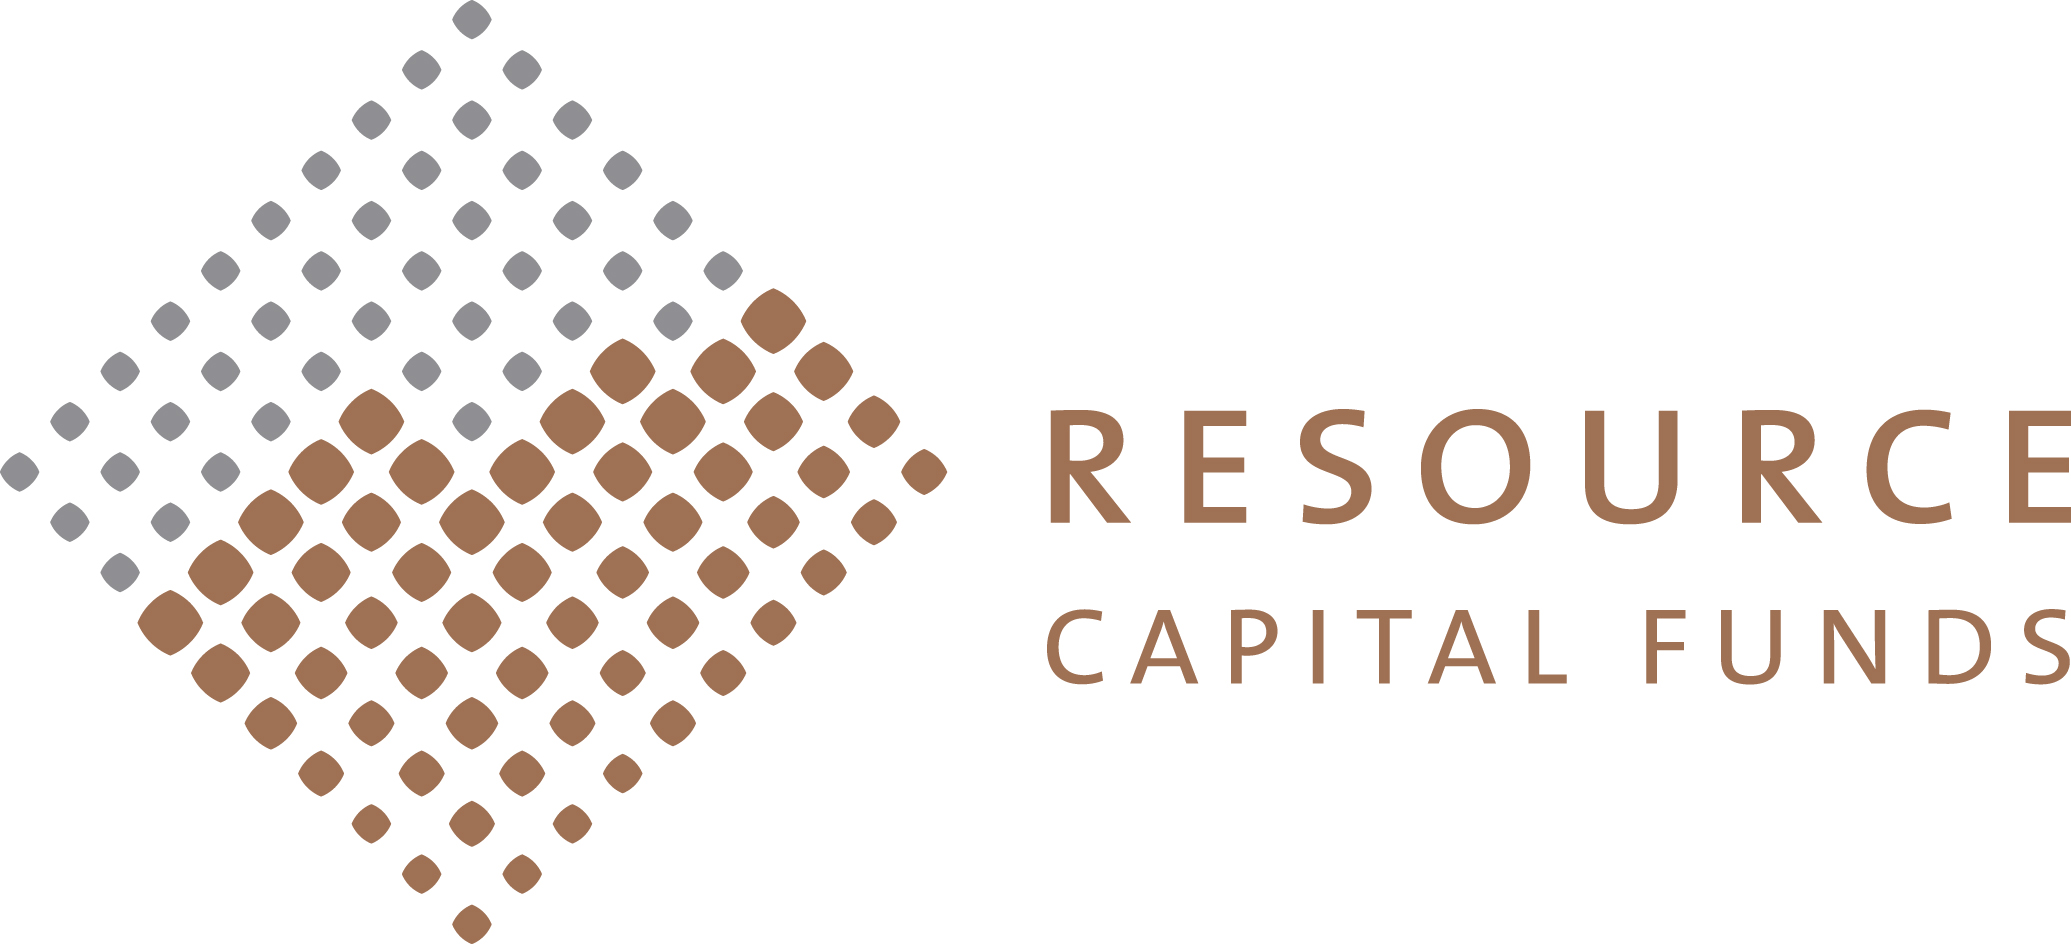 ResourceCapitalFundsLogo%20-%20High%20Res